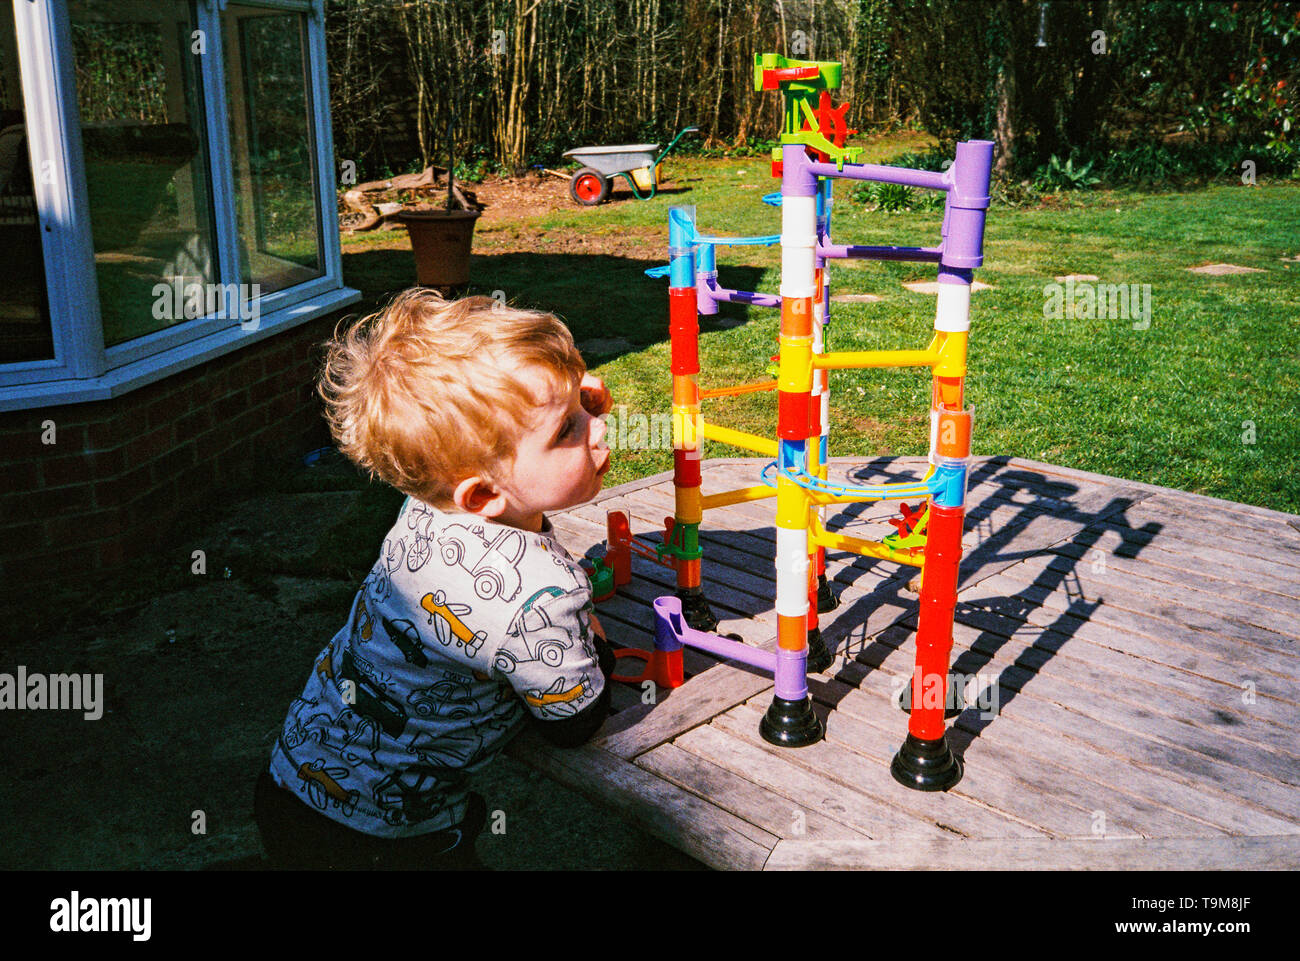 Two year old boy playing with a toy marble run. Medstead, Hampshire, England, Unite Kingdom. - Stock Image